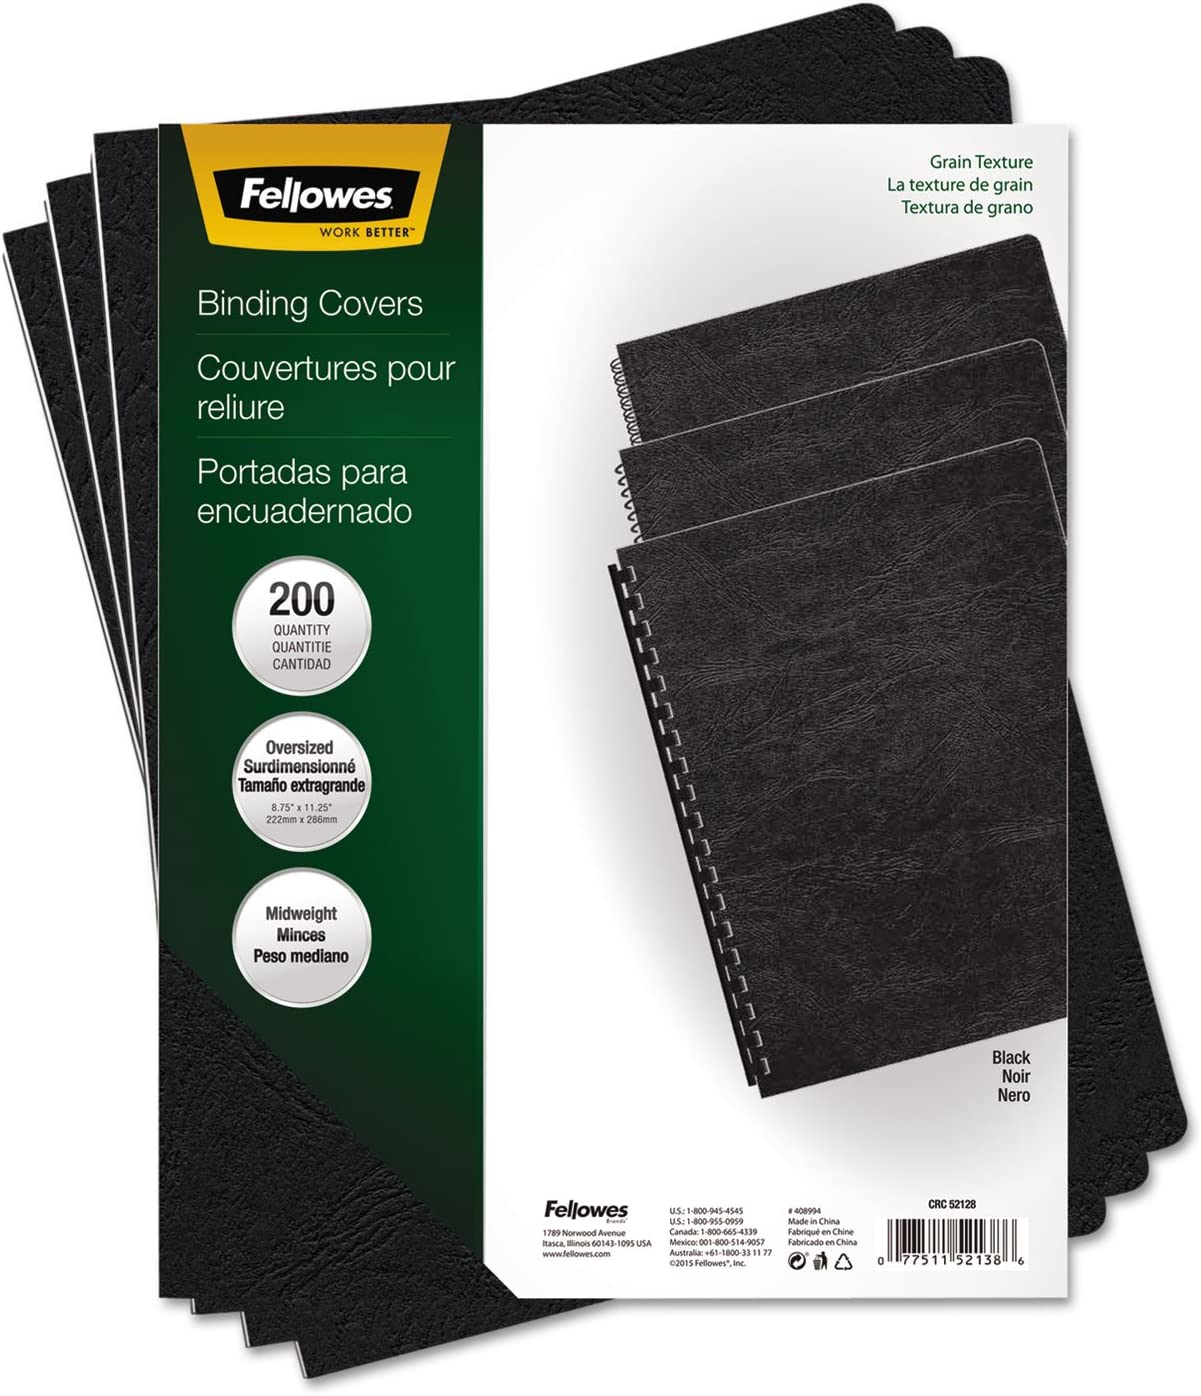 FEL52138 Fellowes Classic Grain Texture Binding System Covers